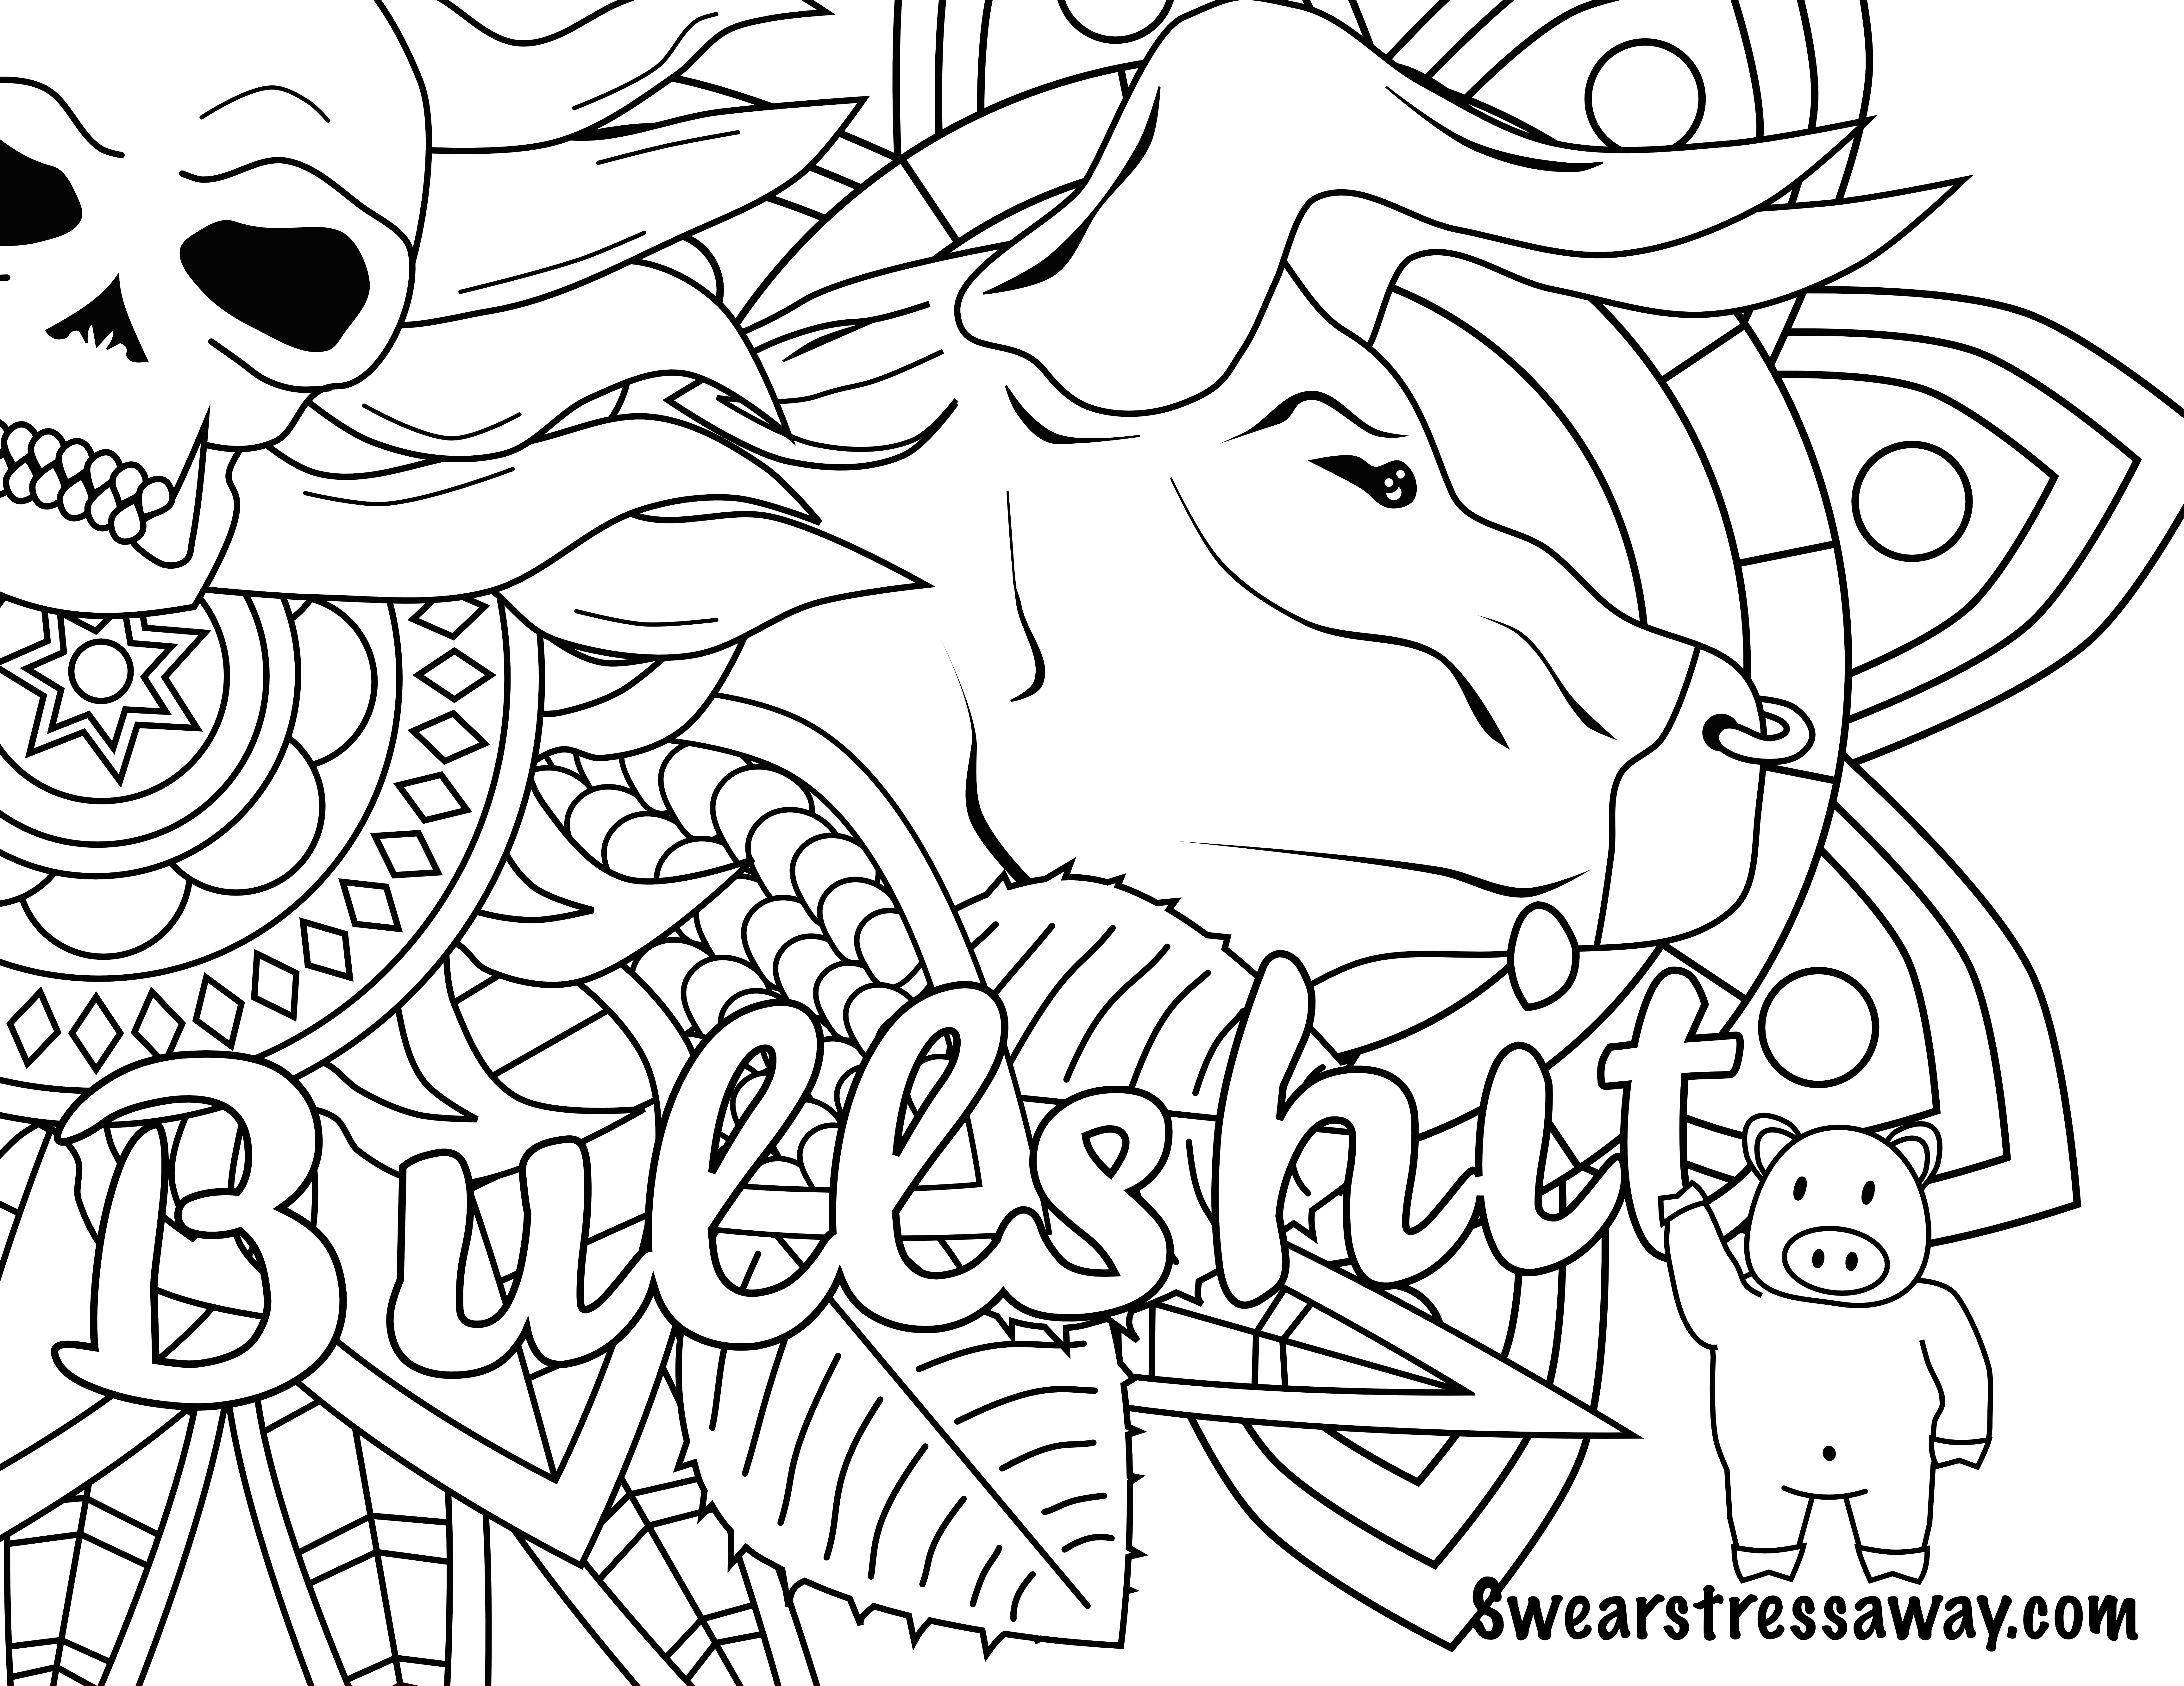 Bullshit Swear Word Coloring Page Adult Coloring Page